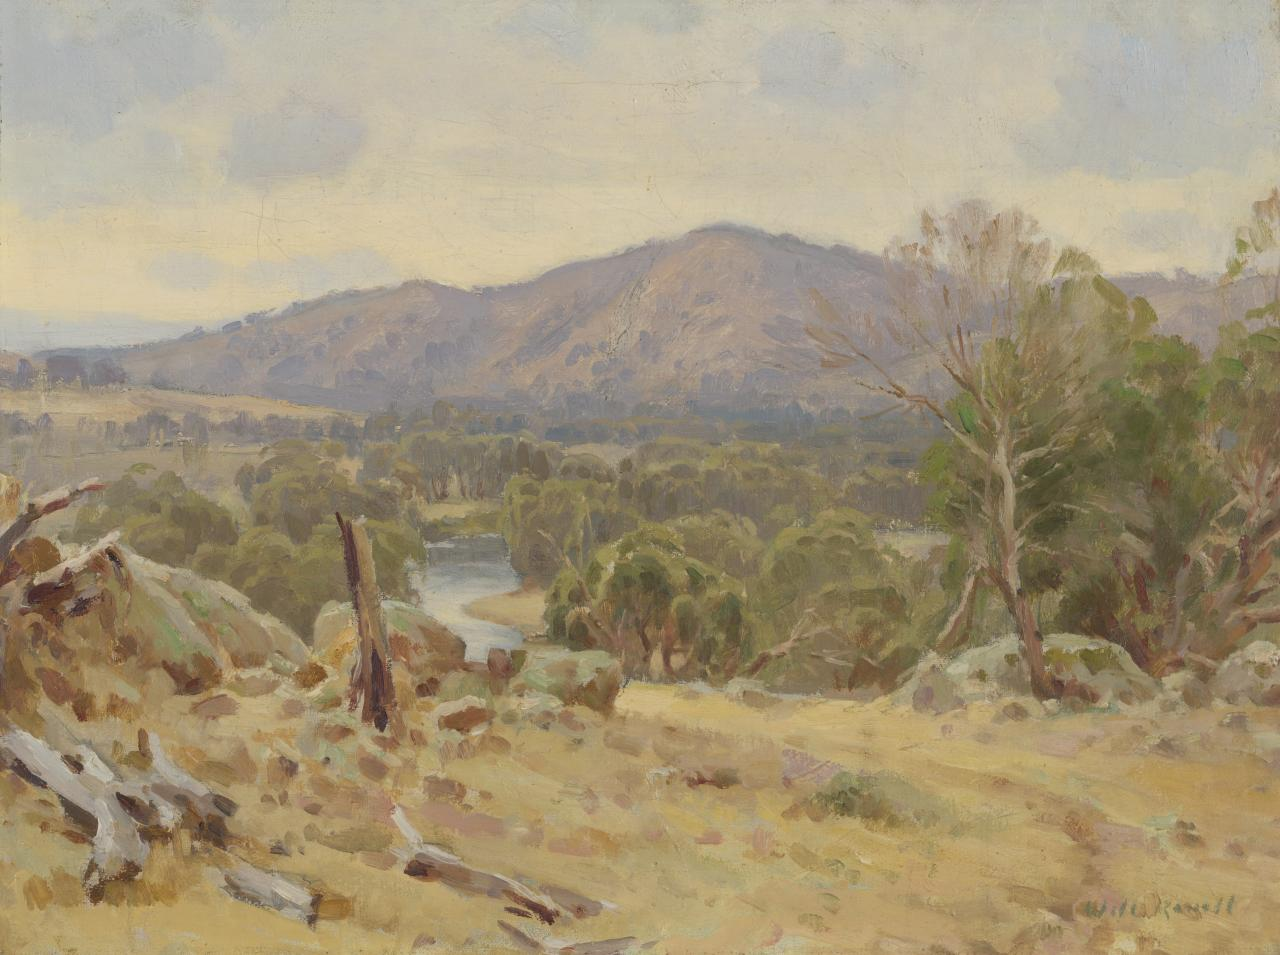 Valley of the Goulburn